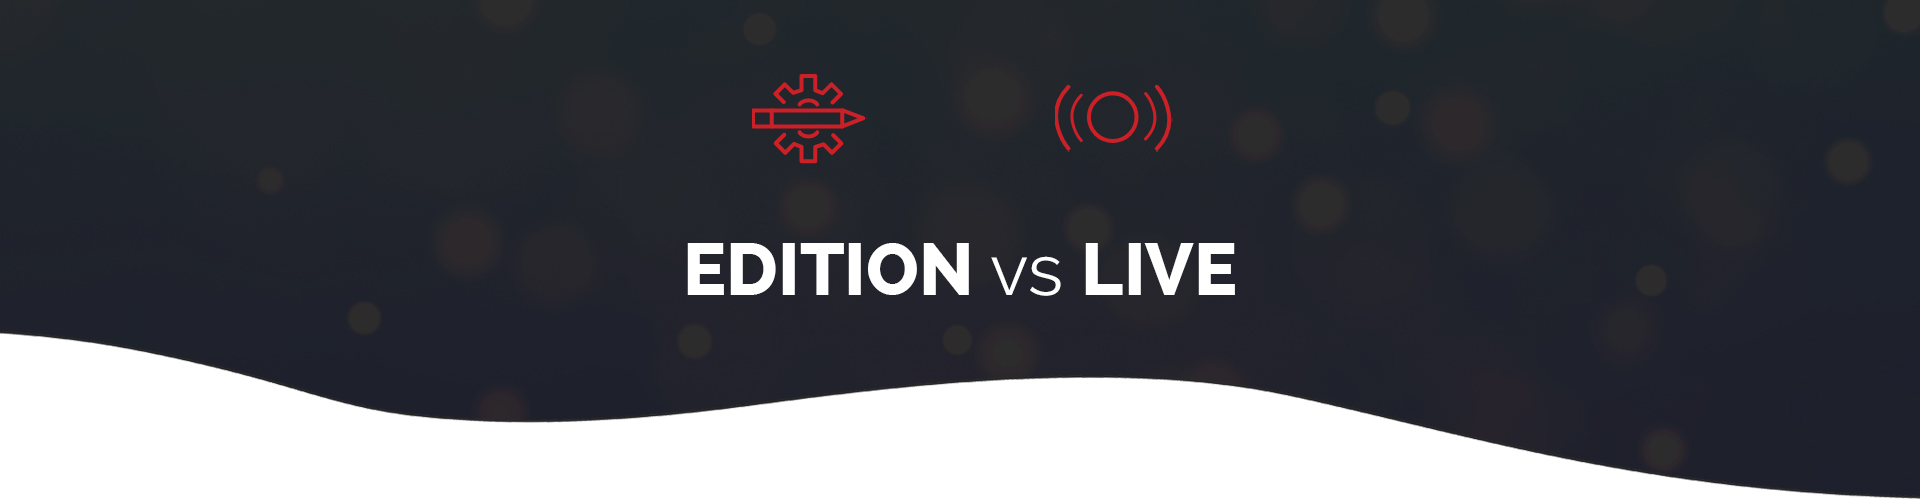 Edition vs Live – Which is best?